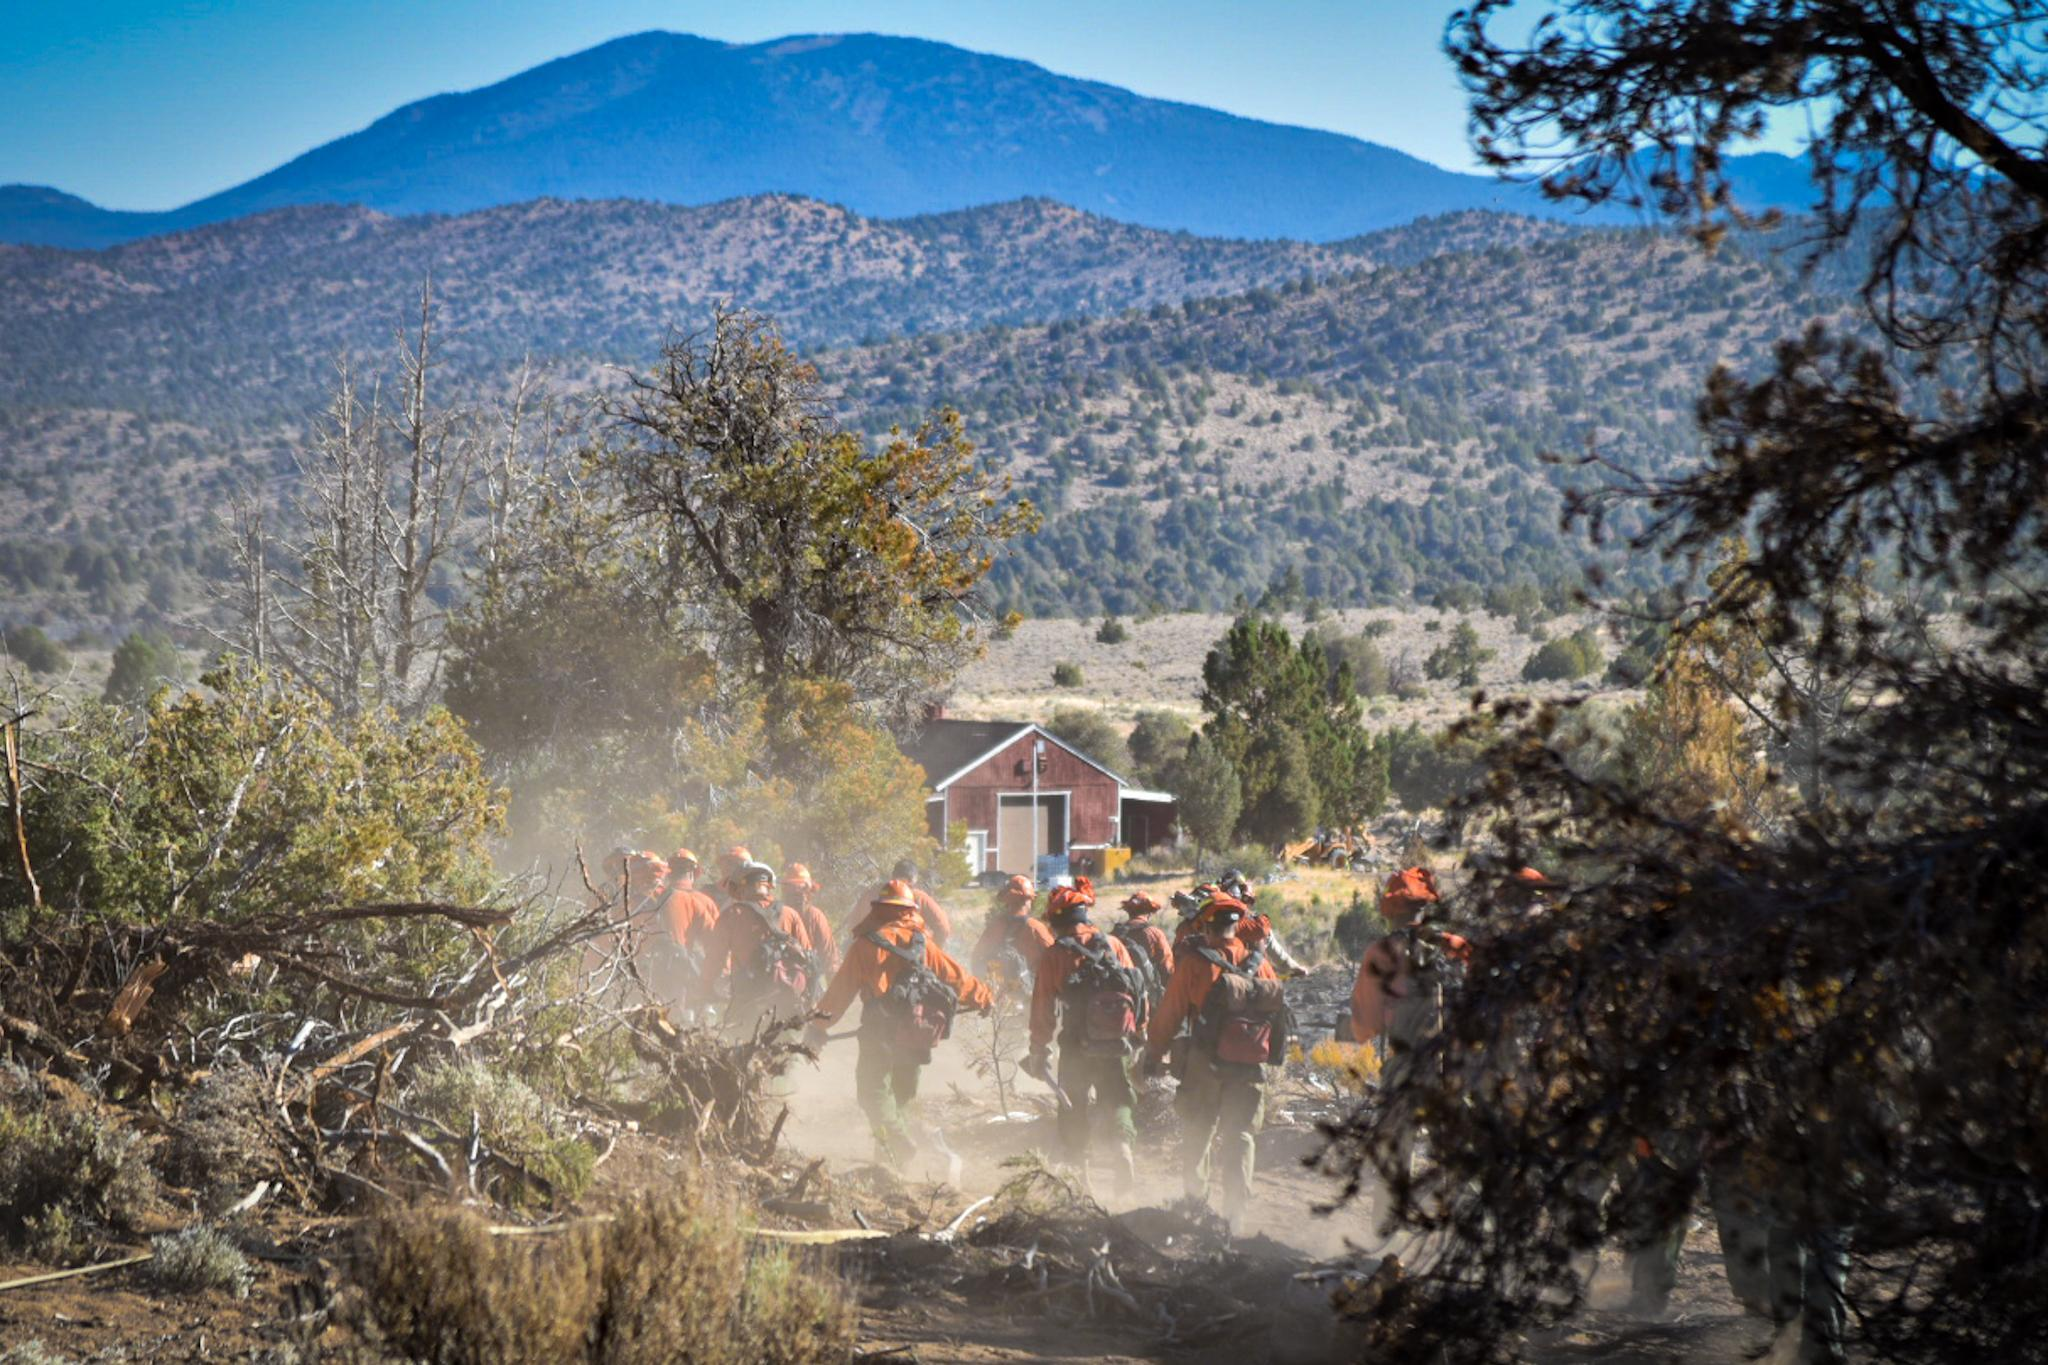 Wildland fireflighters hike together with tools to fight fire.